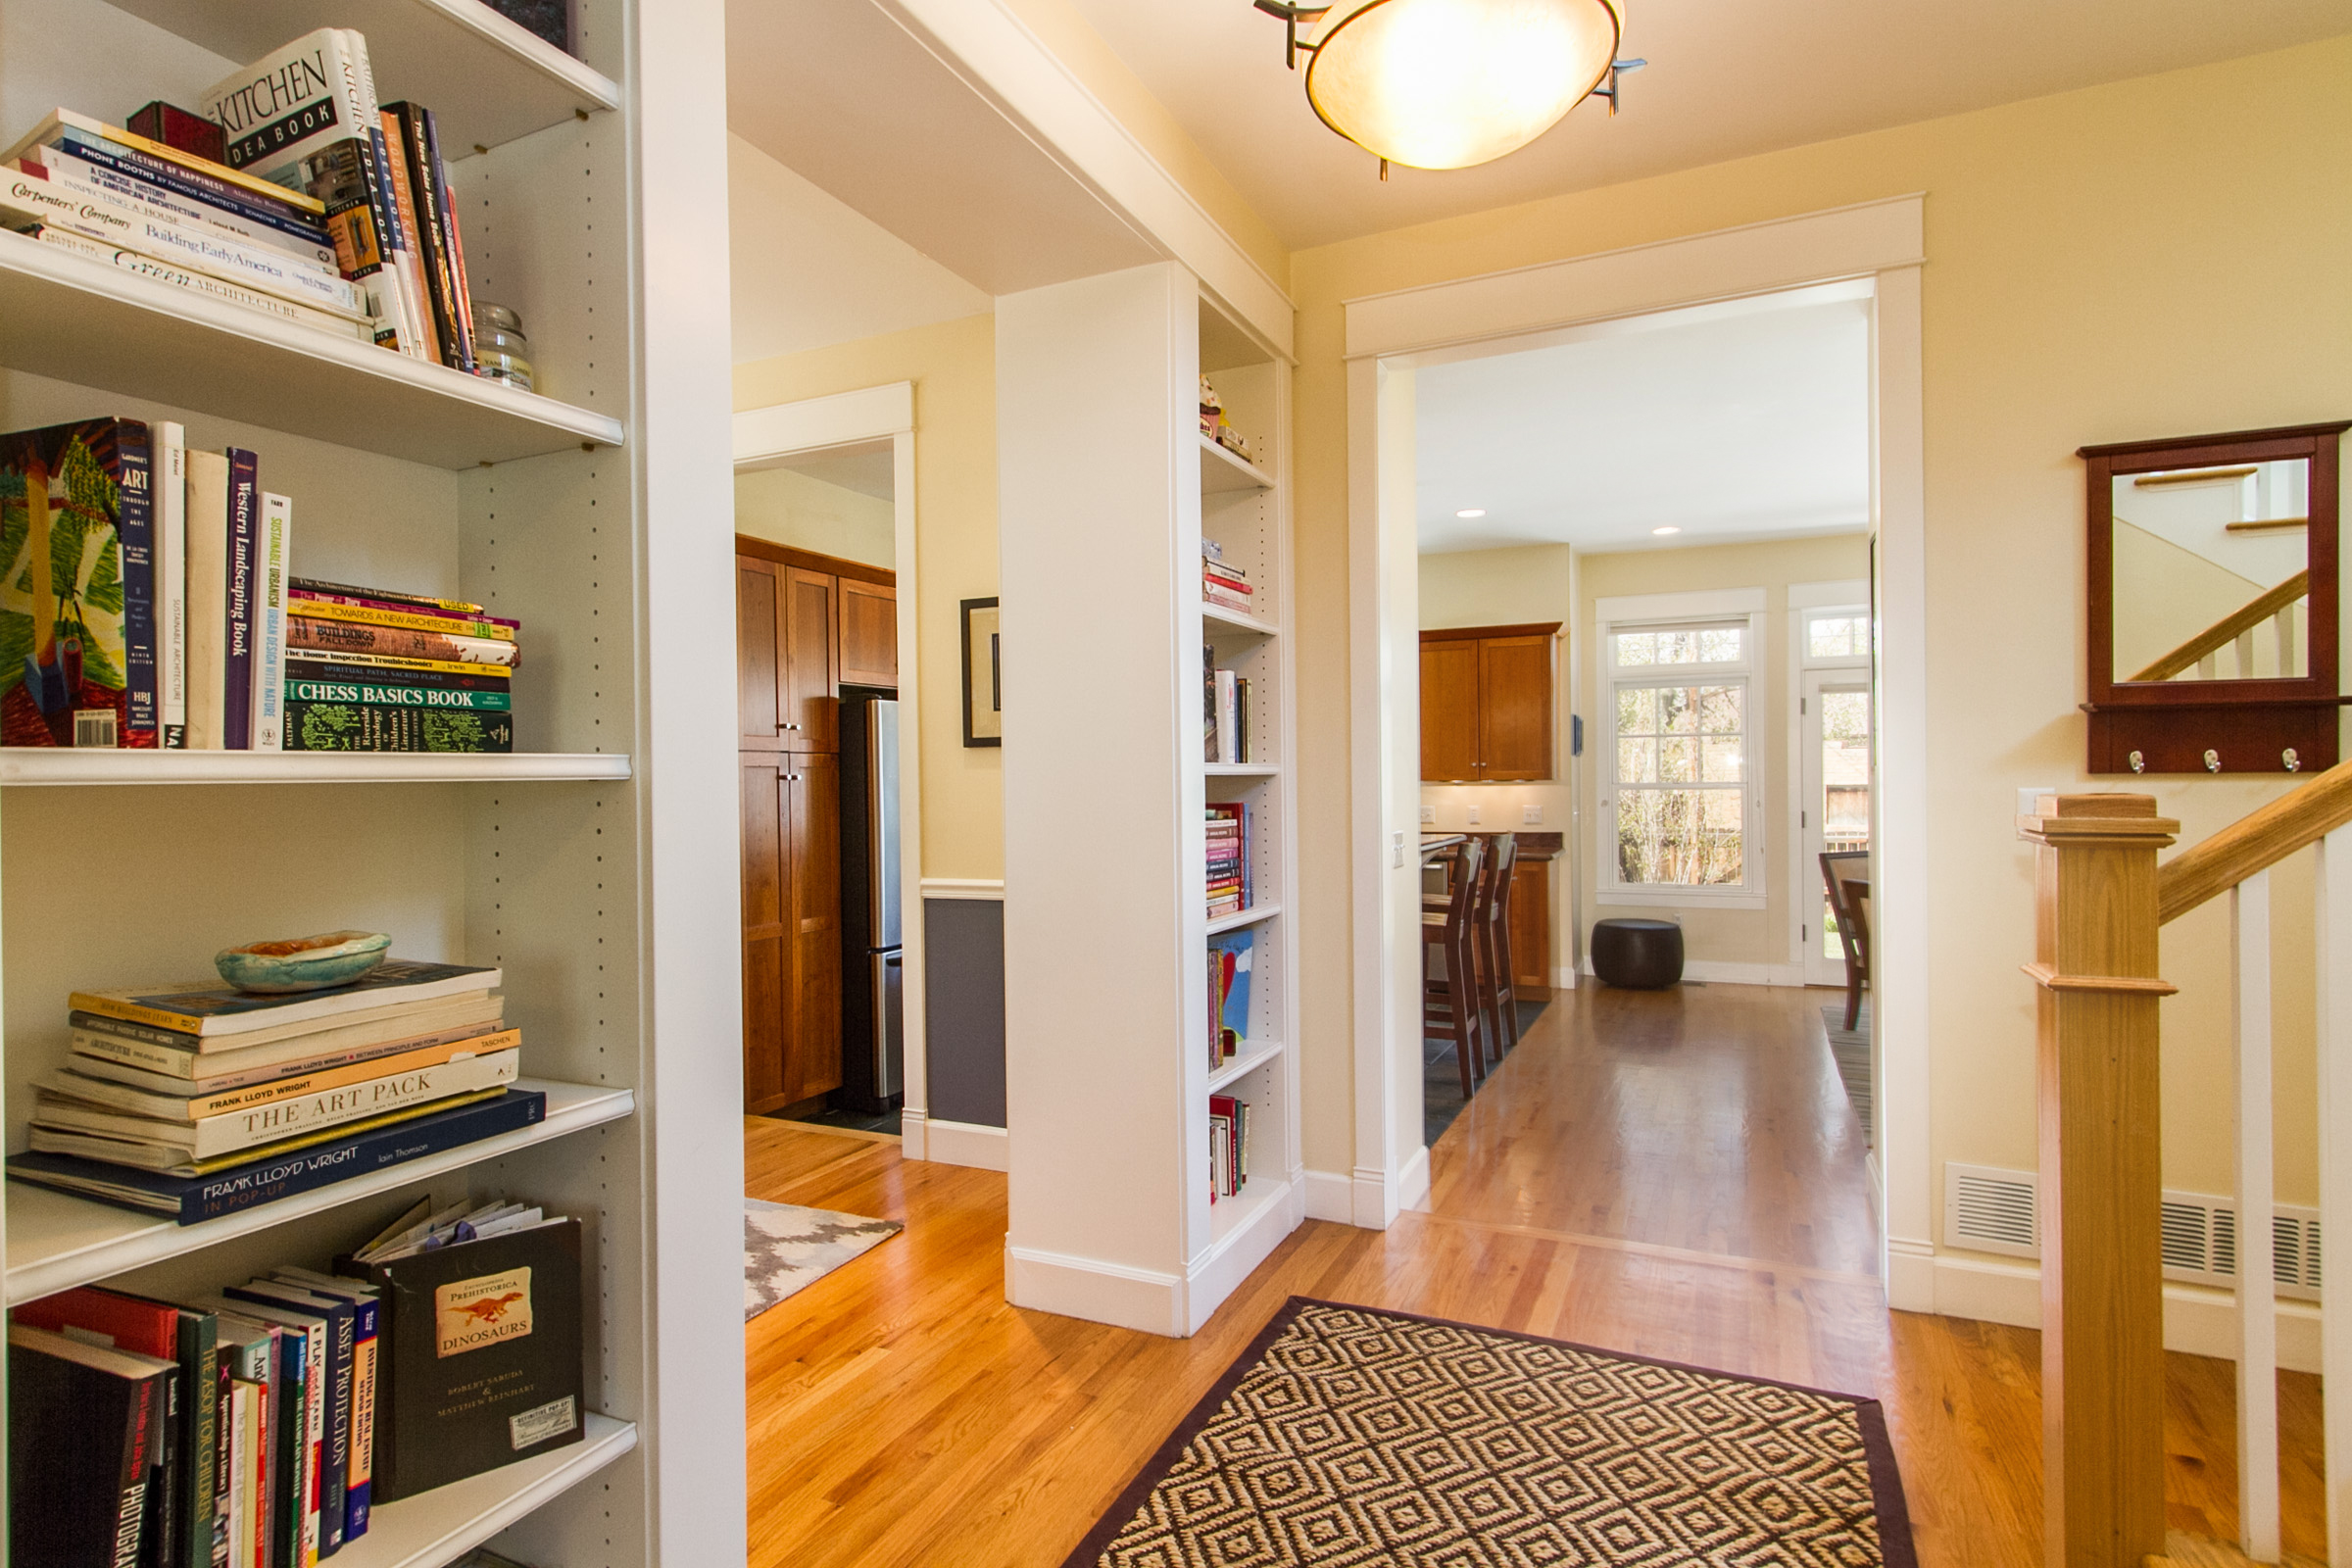 1246088_Central-Hall-Has-Floor-To-Ceiling-Bookcases_high.jpg